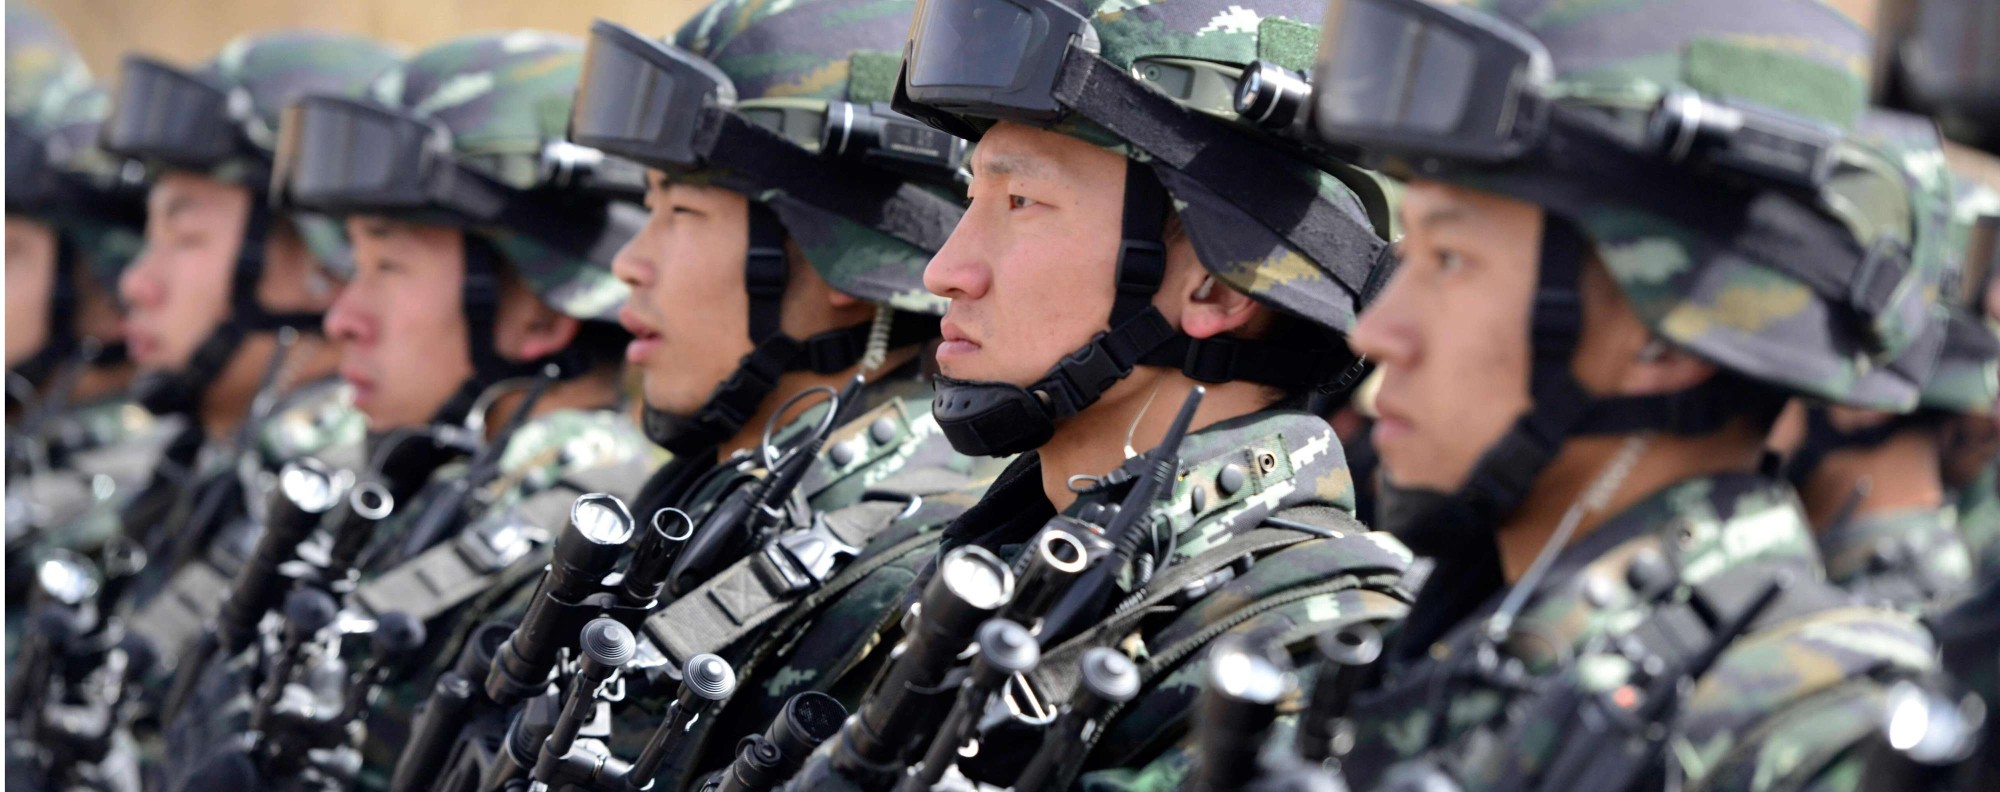 Military police in Xinjiang.Photo: AFP